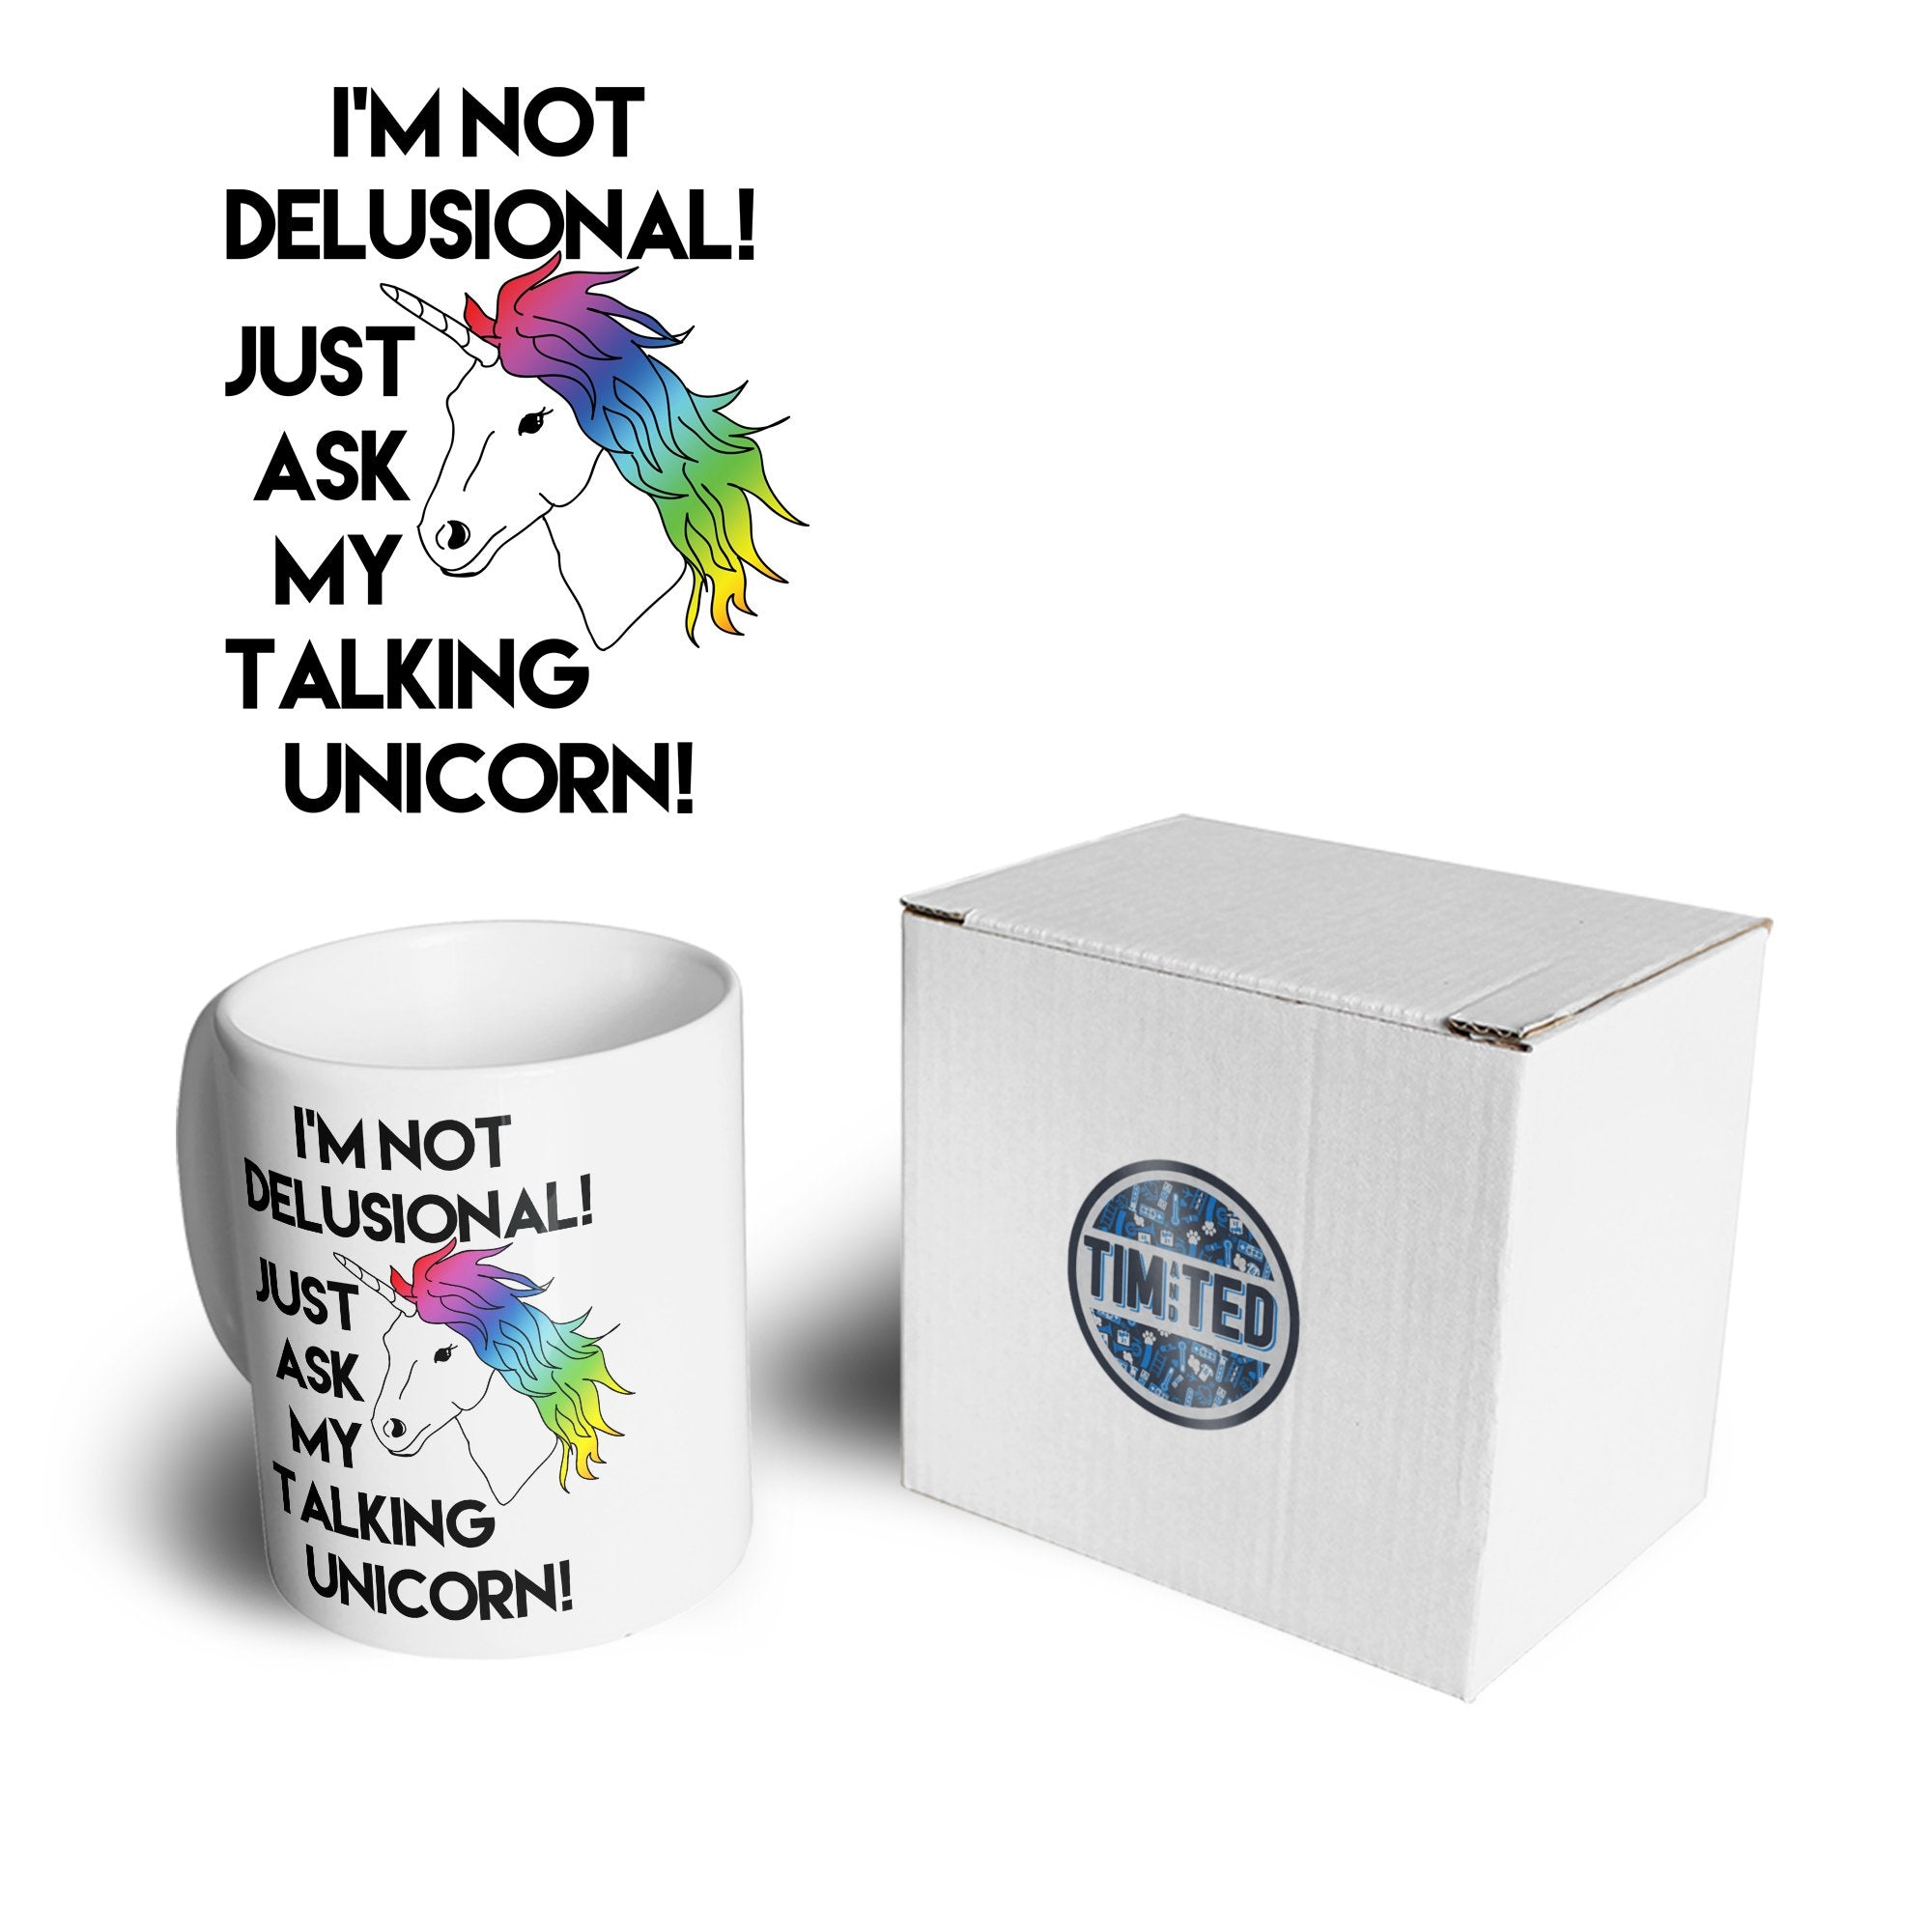 Novelty Mug I'm Not Delusional! Ask My Unicorn! Coffee Tea Cup